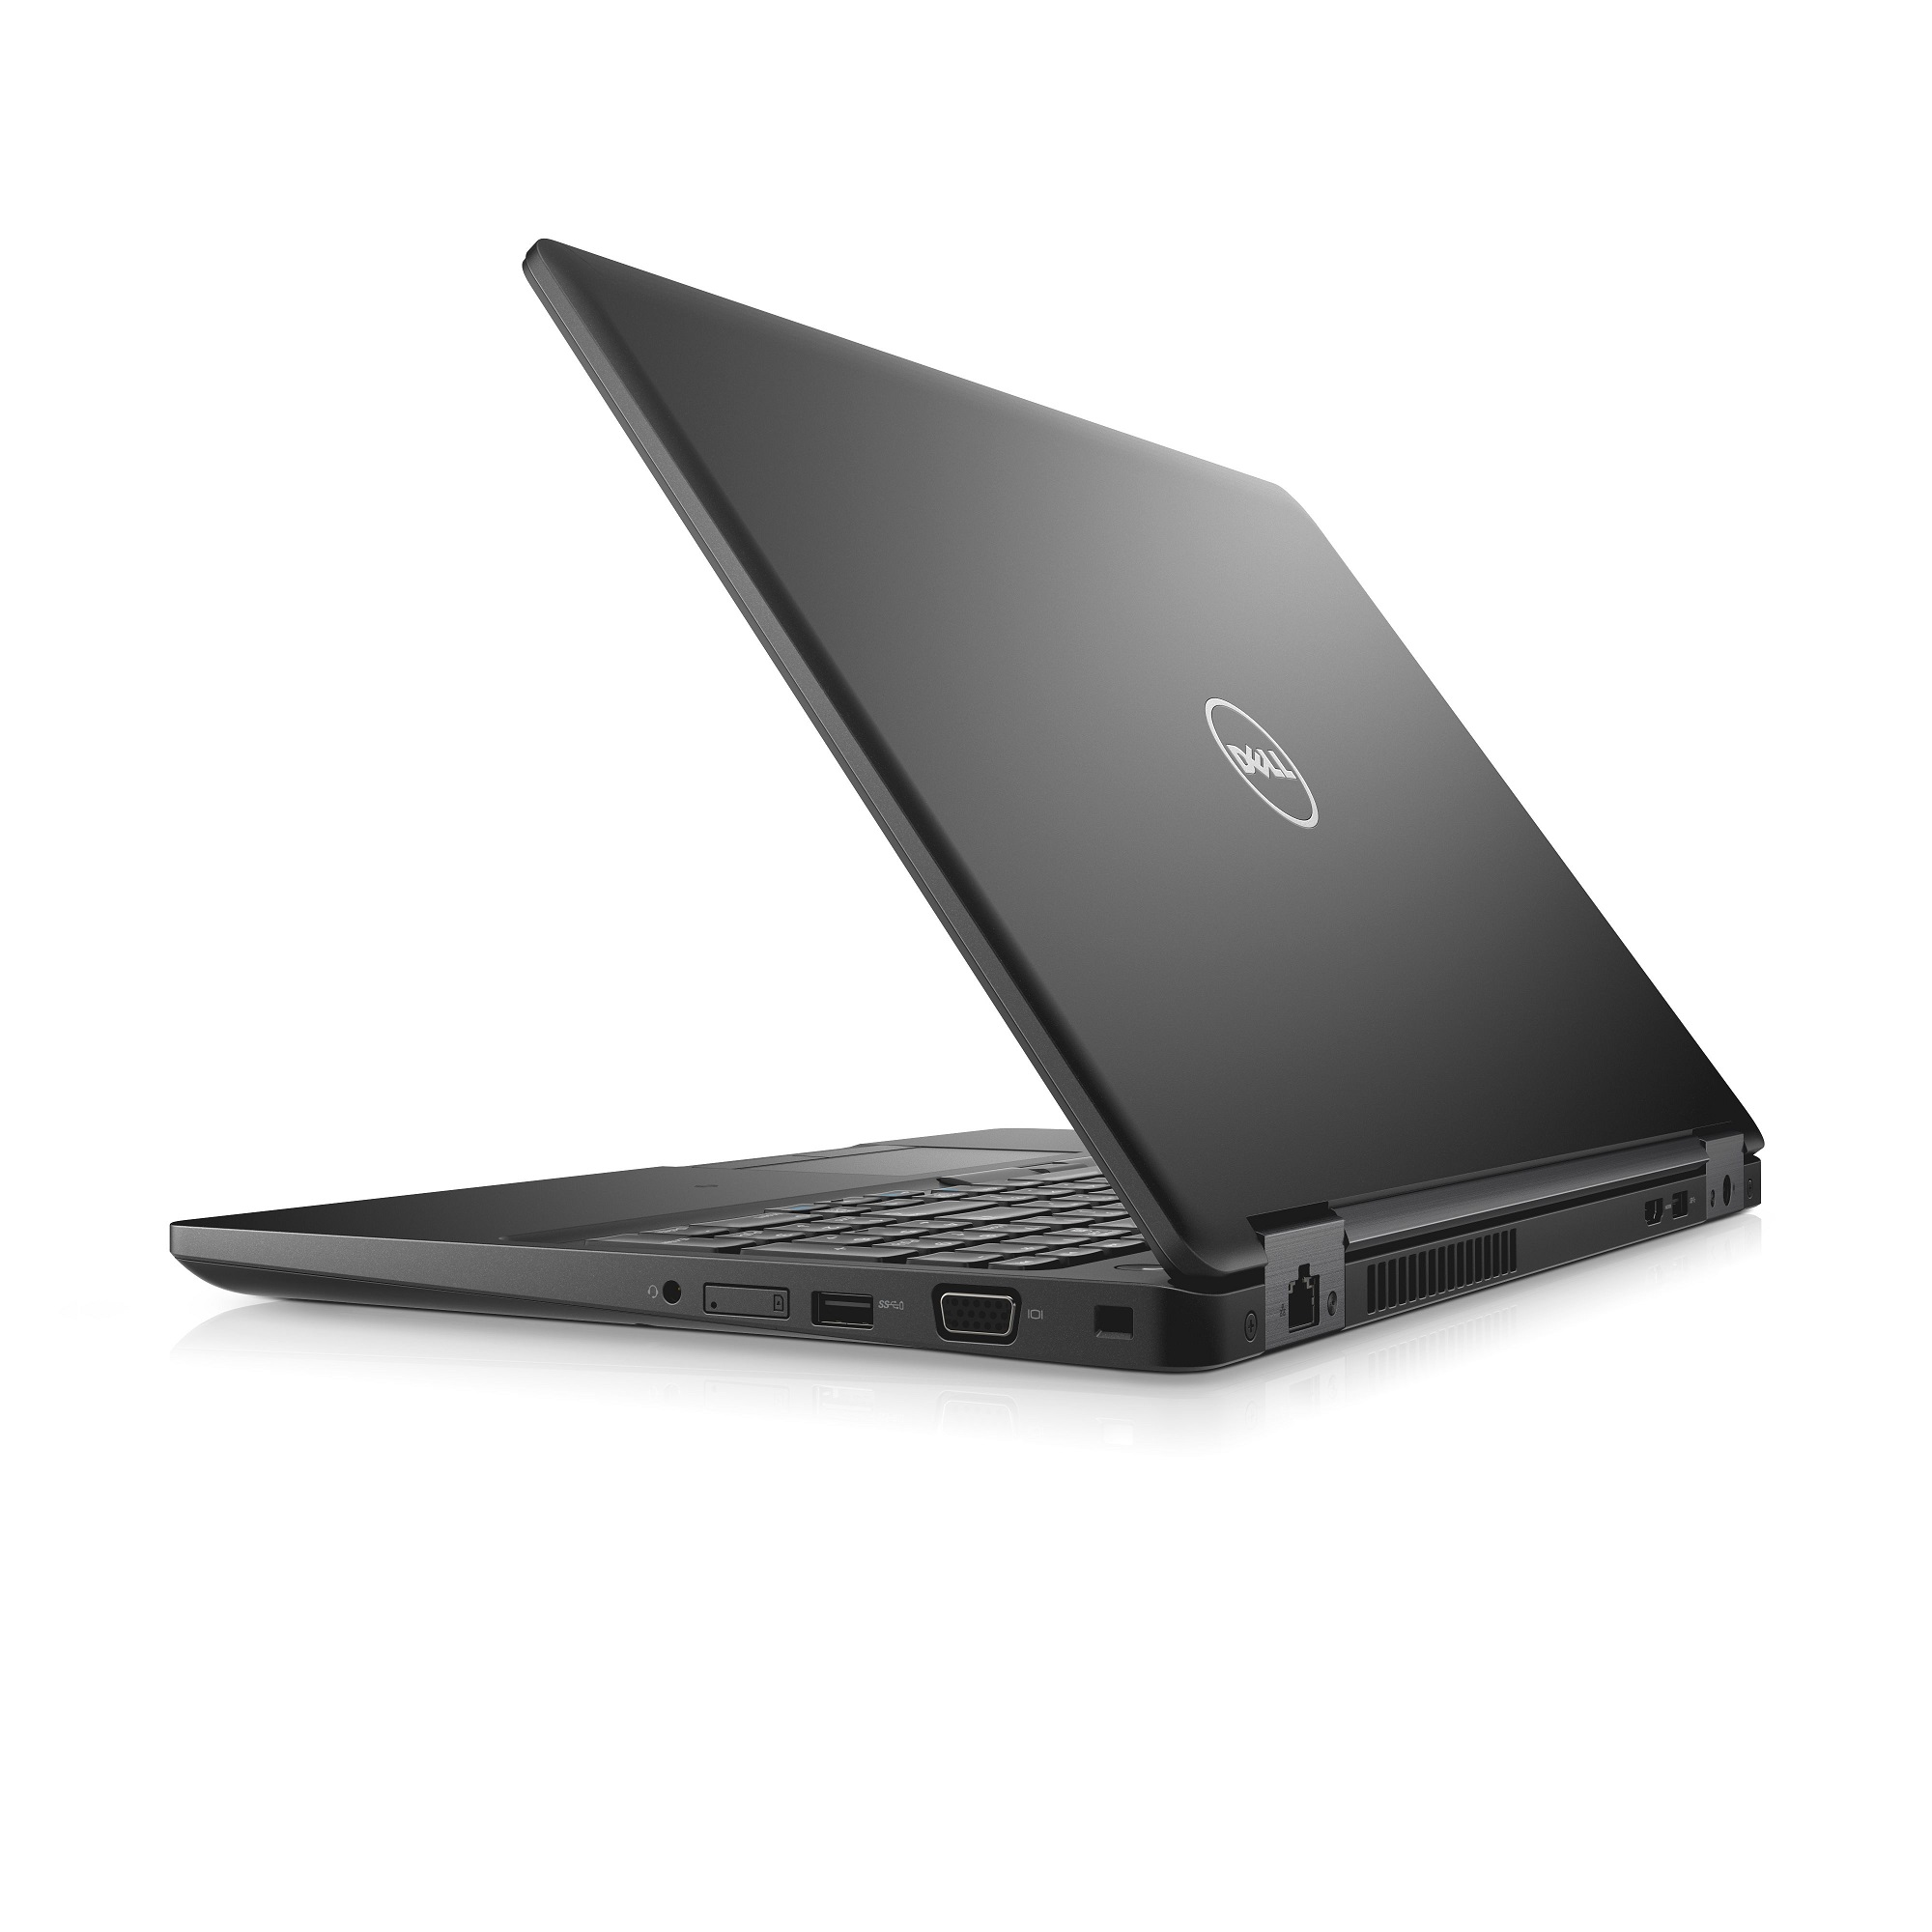 "DELL Latitude 5580/i7-7600/8GB/500GB 7200 ot./Nvidia 930MX/15.6"" FHD/Win 10Pro/Black"